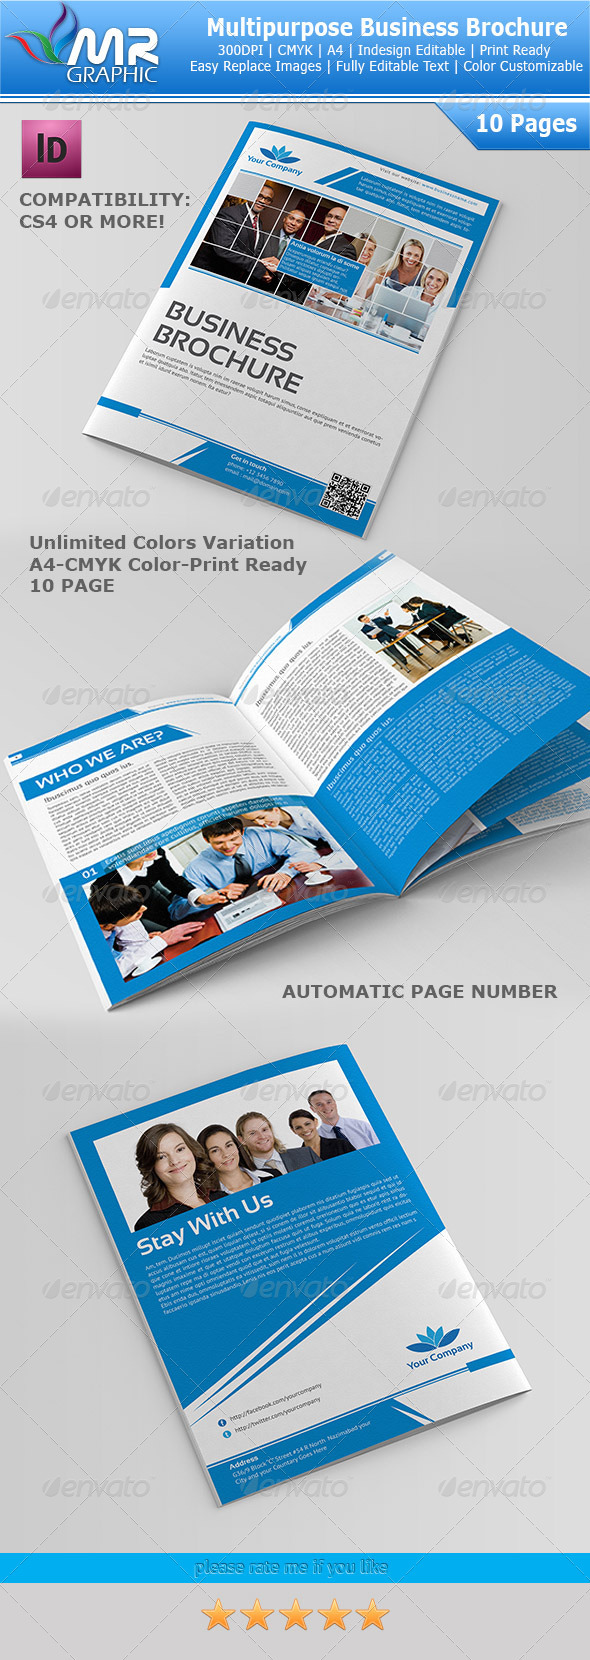 10 Page Multipurpose Business Brochure - Corporate Brochures